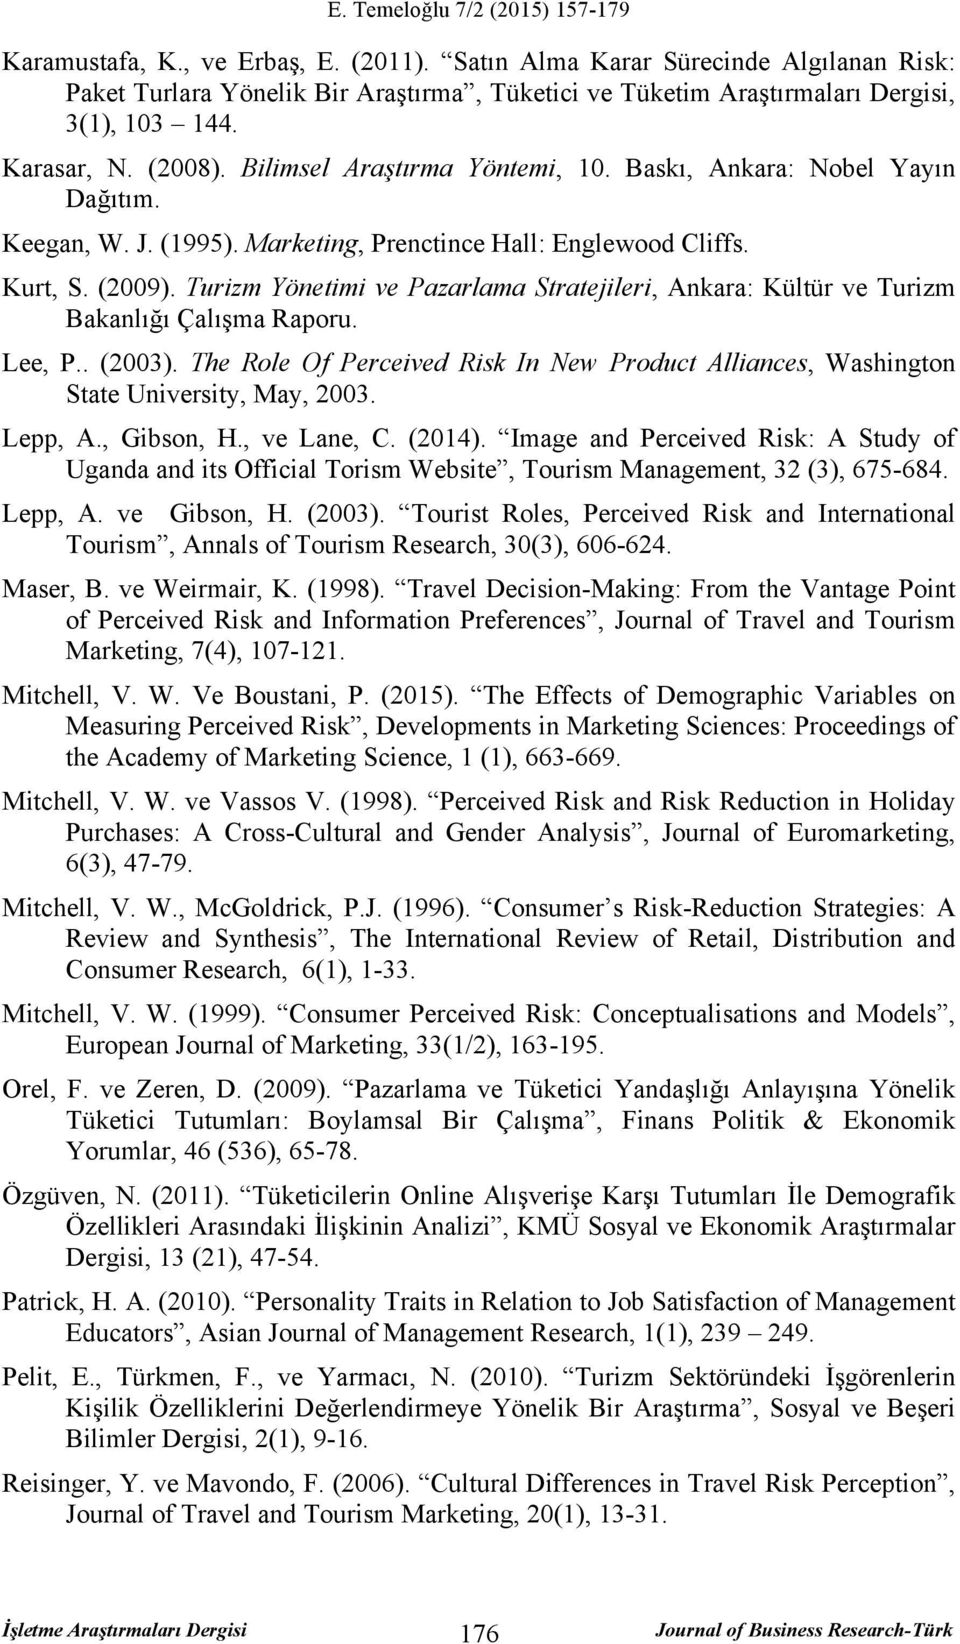 Turizm Yönetimi ve Pazarlama Stratejileri, Ankara: Kültür ve Turizm Bakanlığı Çalışma Raporu. Lee, P.. (2003). The Role Of Perceived In New Product Alliances, Washington State University, May, 2003.